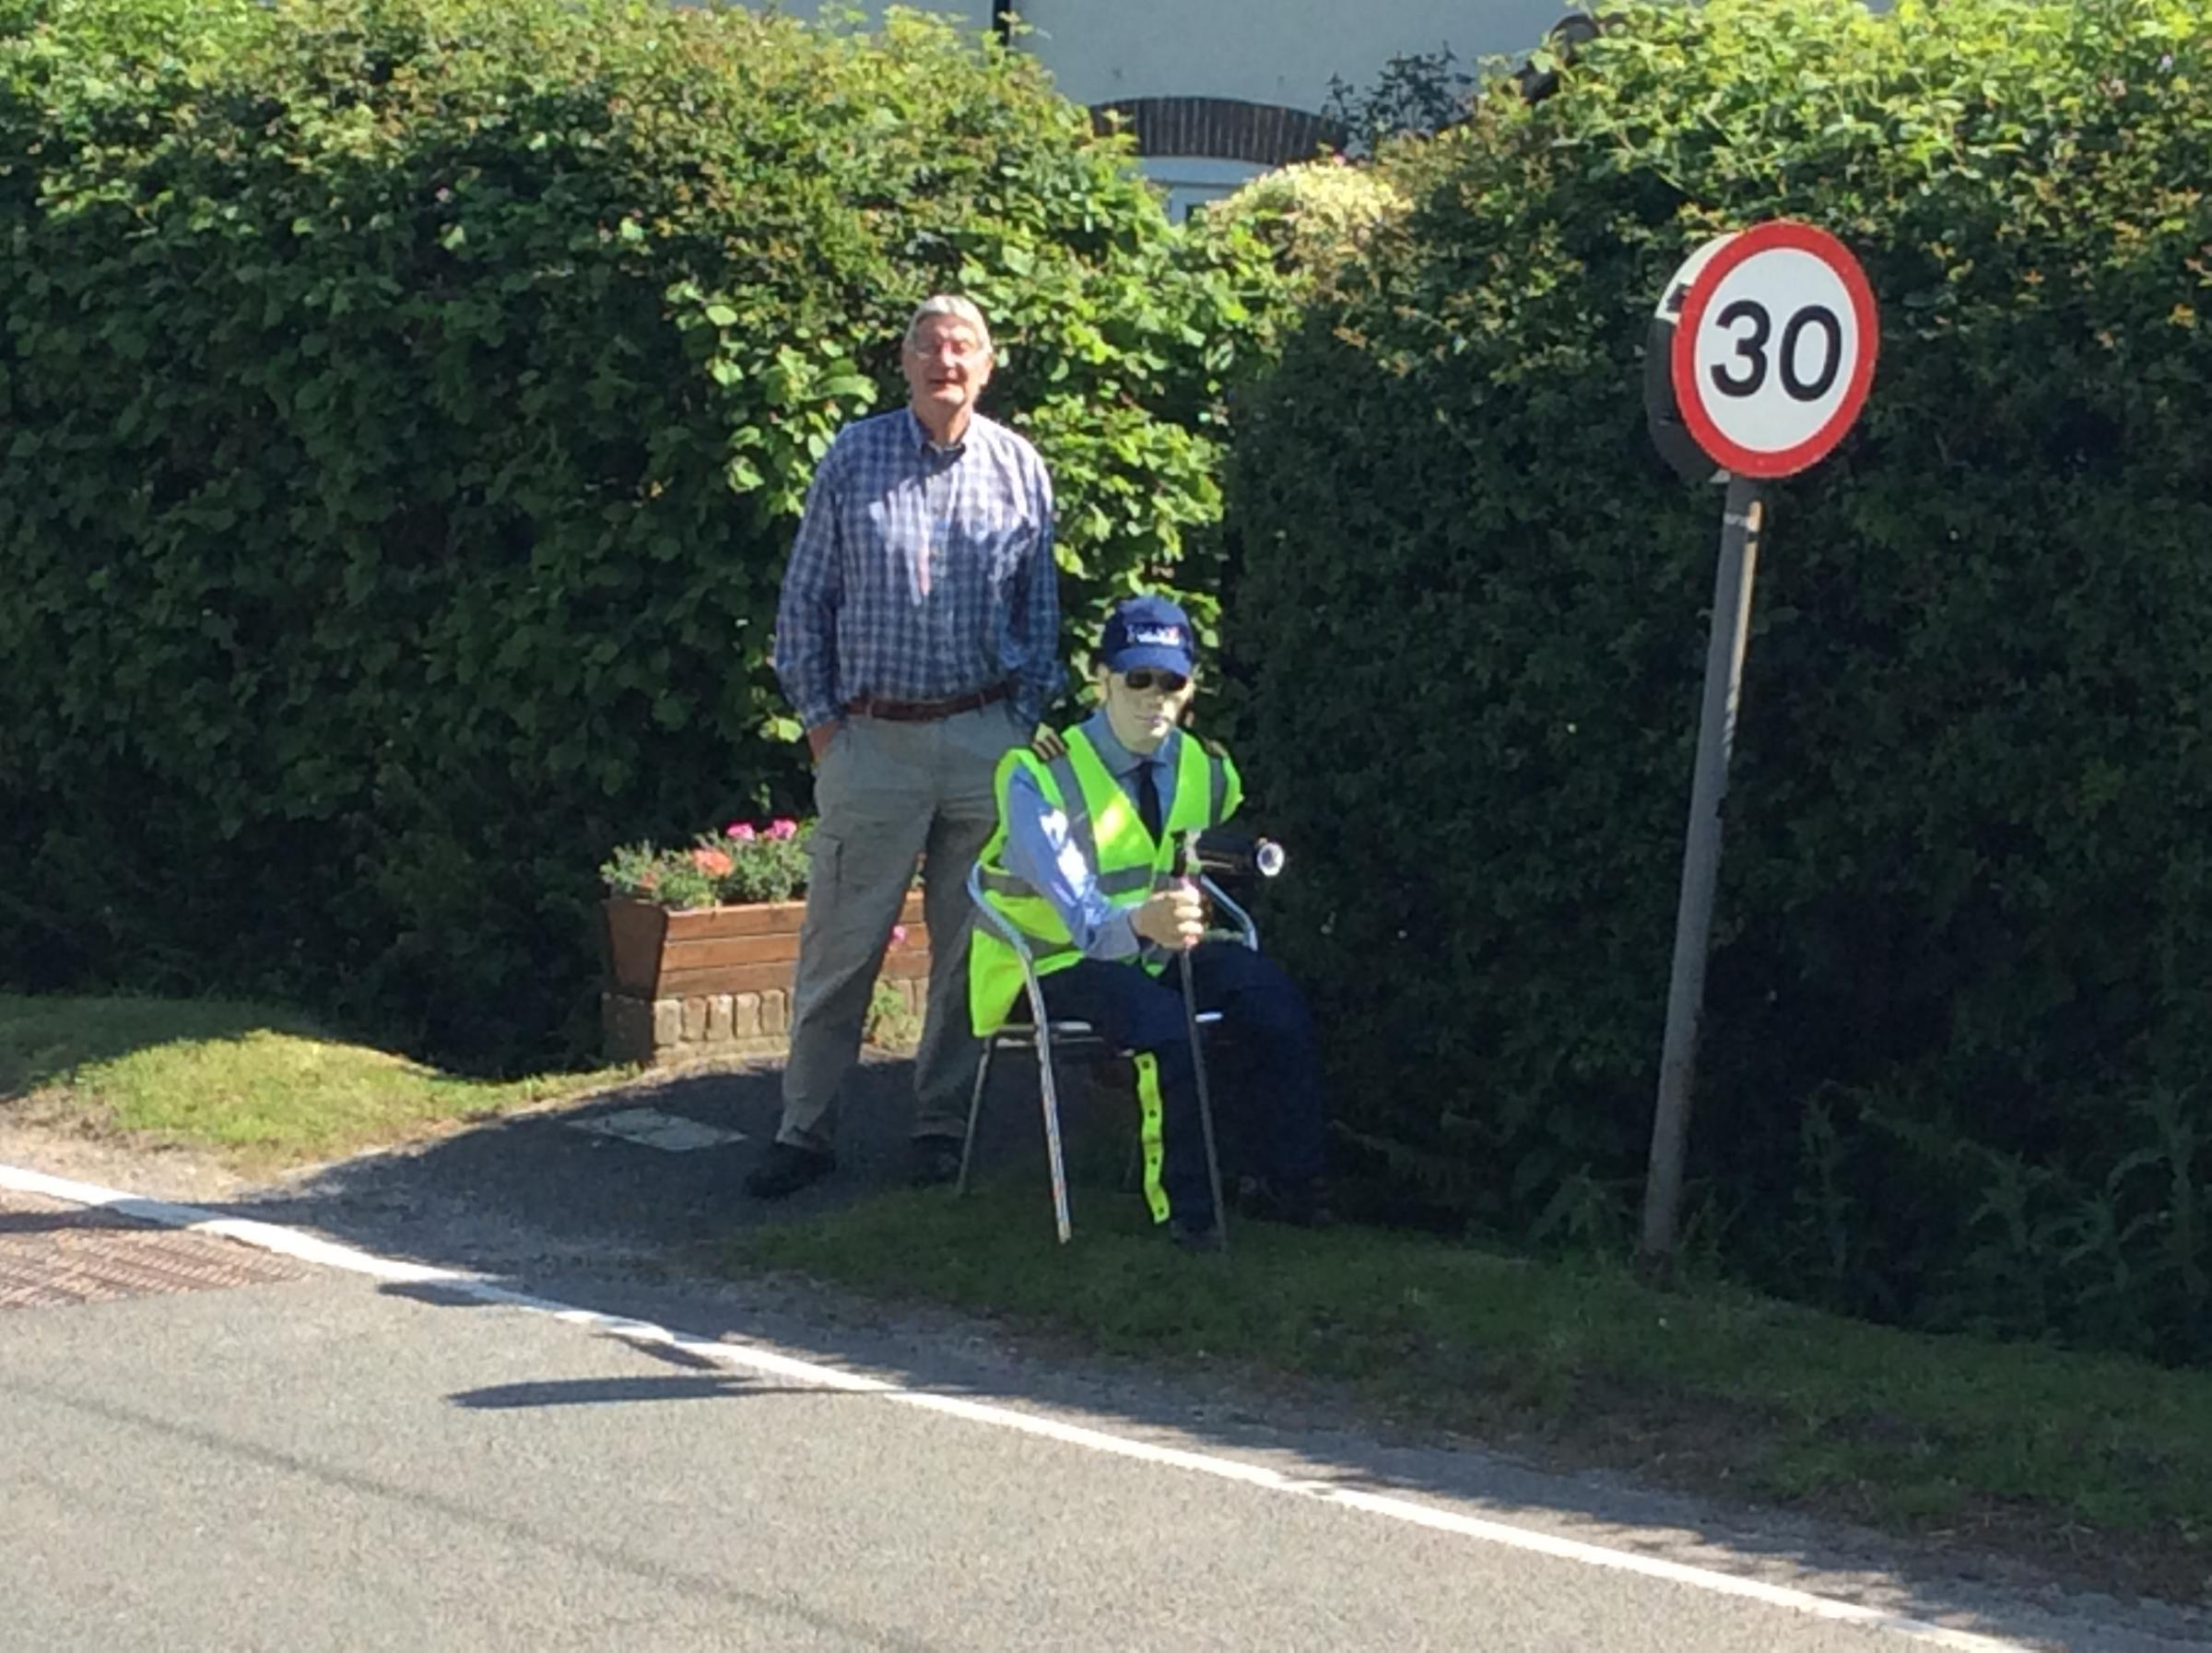 GOOD FUN: Mr Hildred and his 'good-humoured' scarecrow